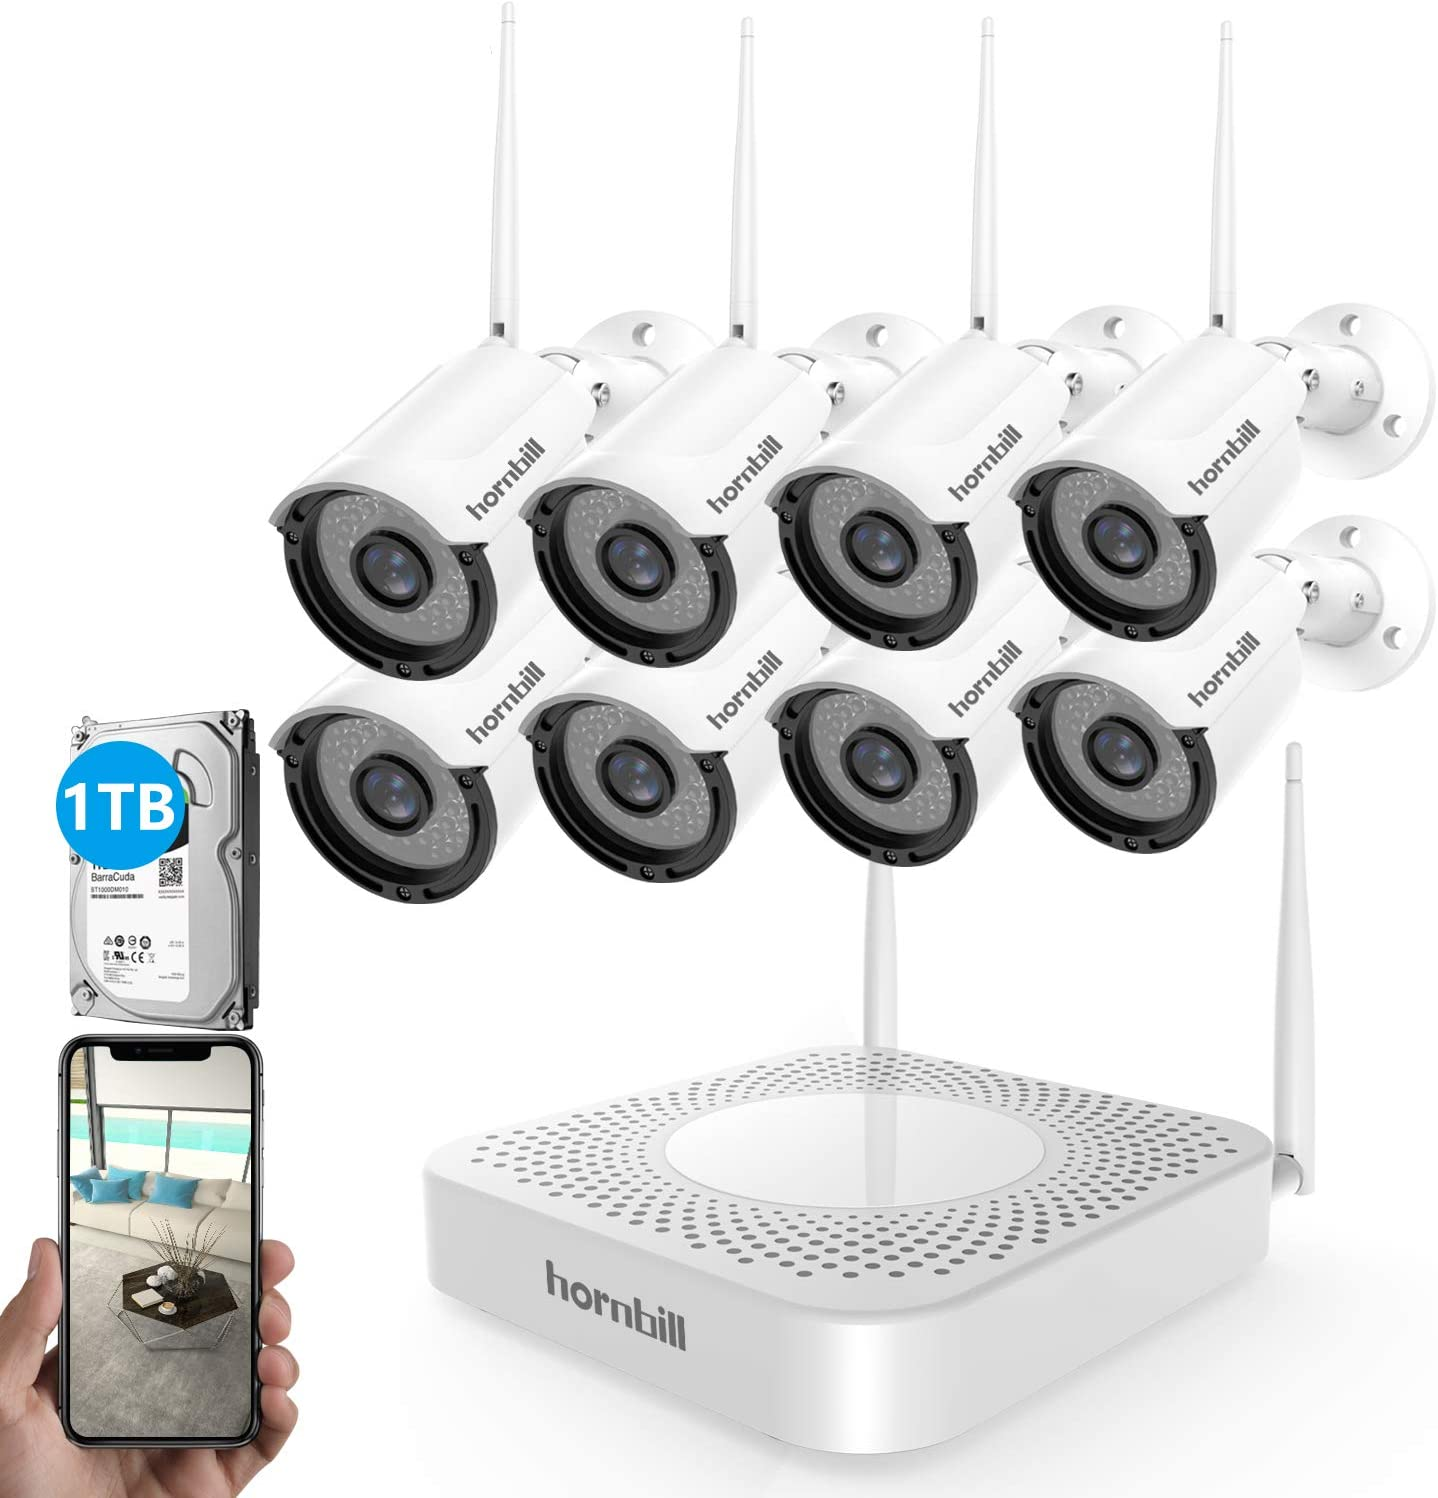 2019 New Security Camera System Wireless,Hornbill 8 Channel 1080P Outdoor Home WiFi Security Surveillance Camera System,8pcs 1.3MP IP Security Camera and 1TB Hard Drive Installed No Monthly Fee